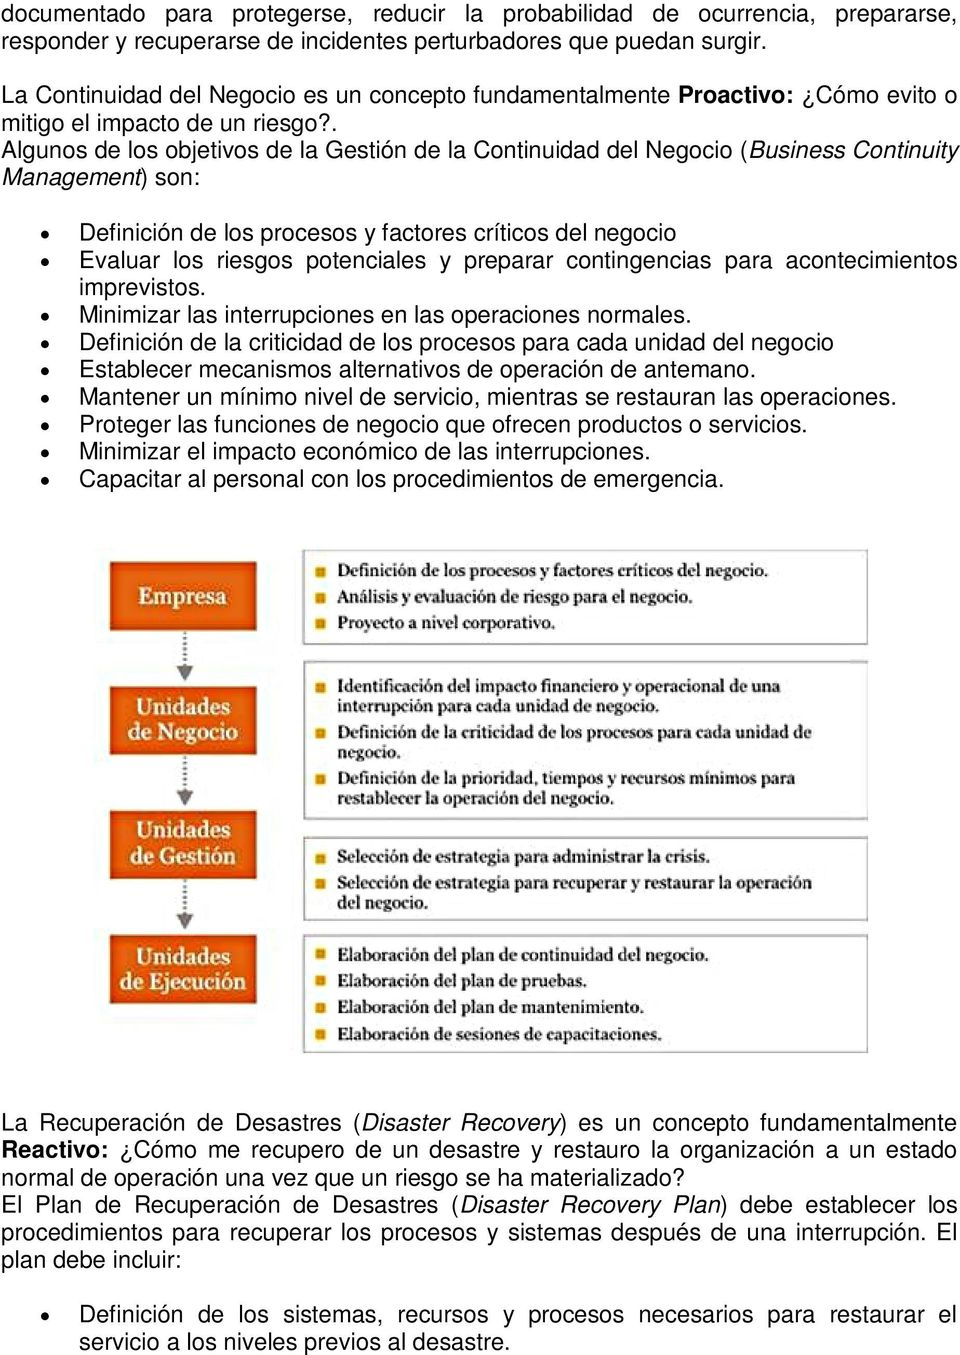 que es disaster recovery plan